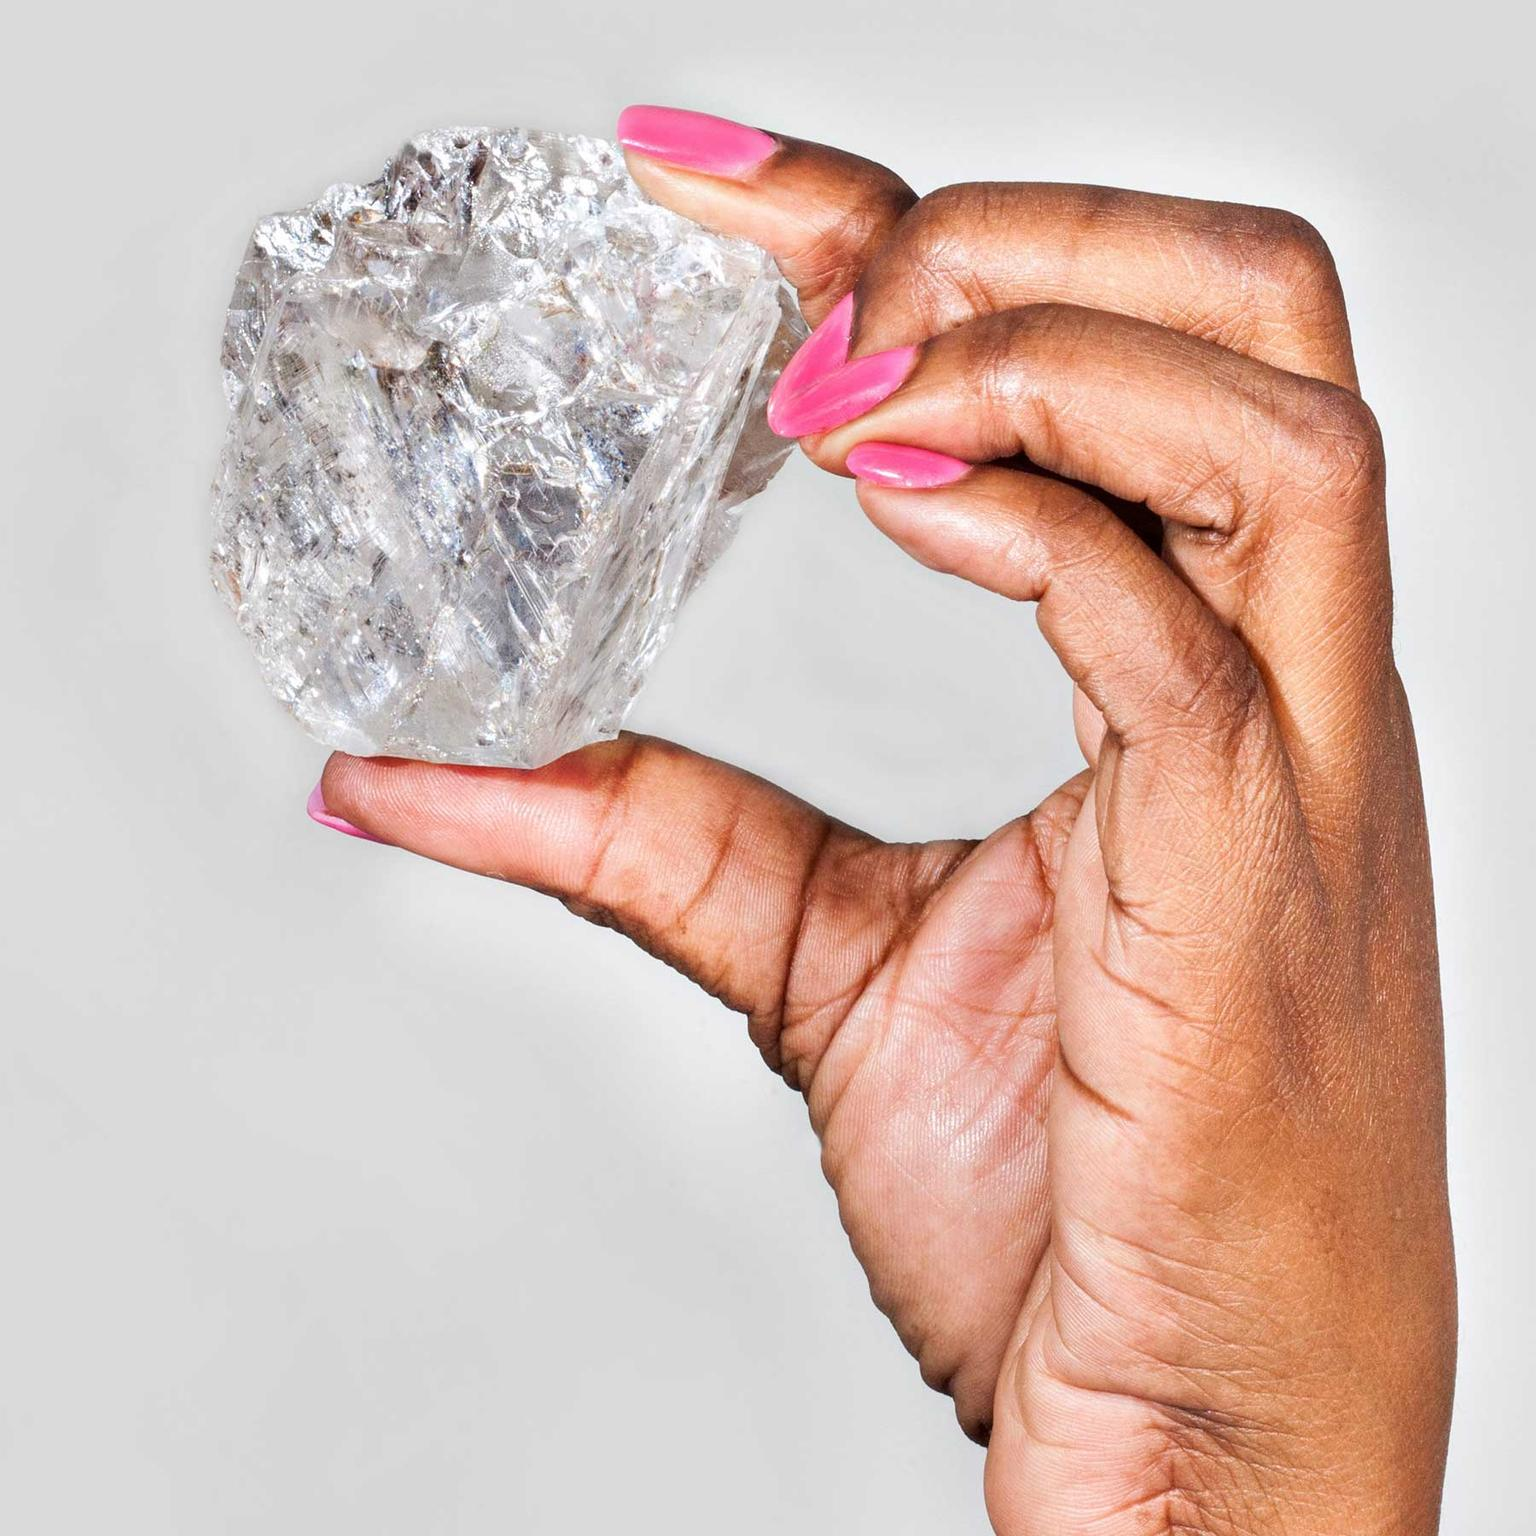 The 1,111 carat Karowe AK6 rough diamond